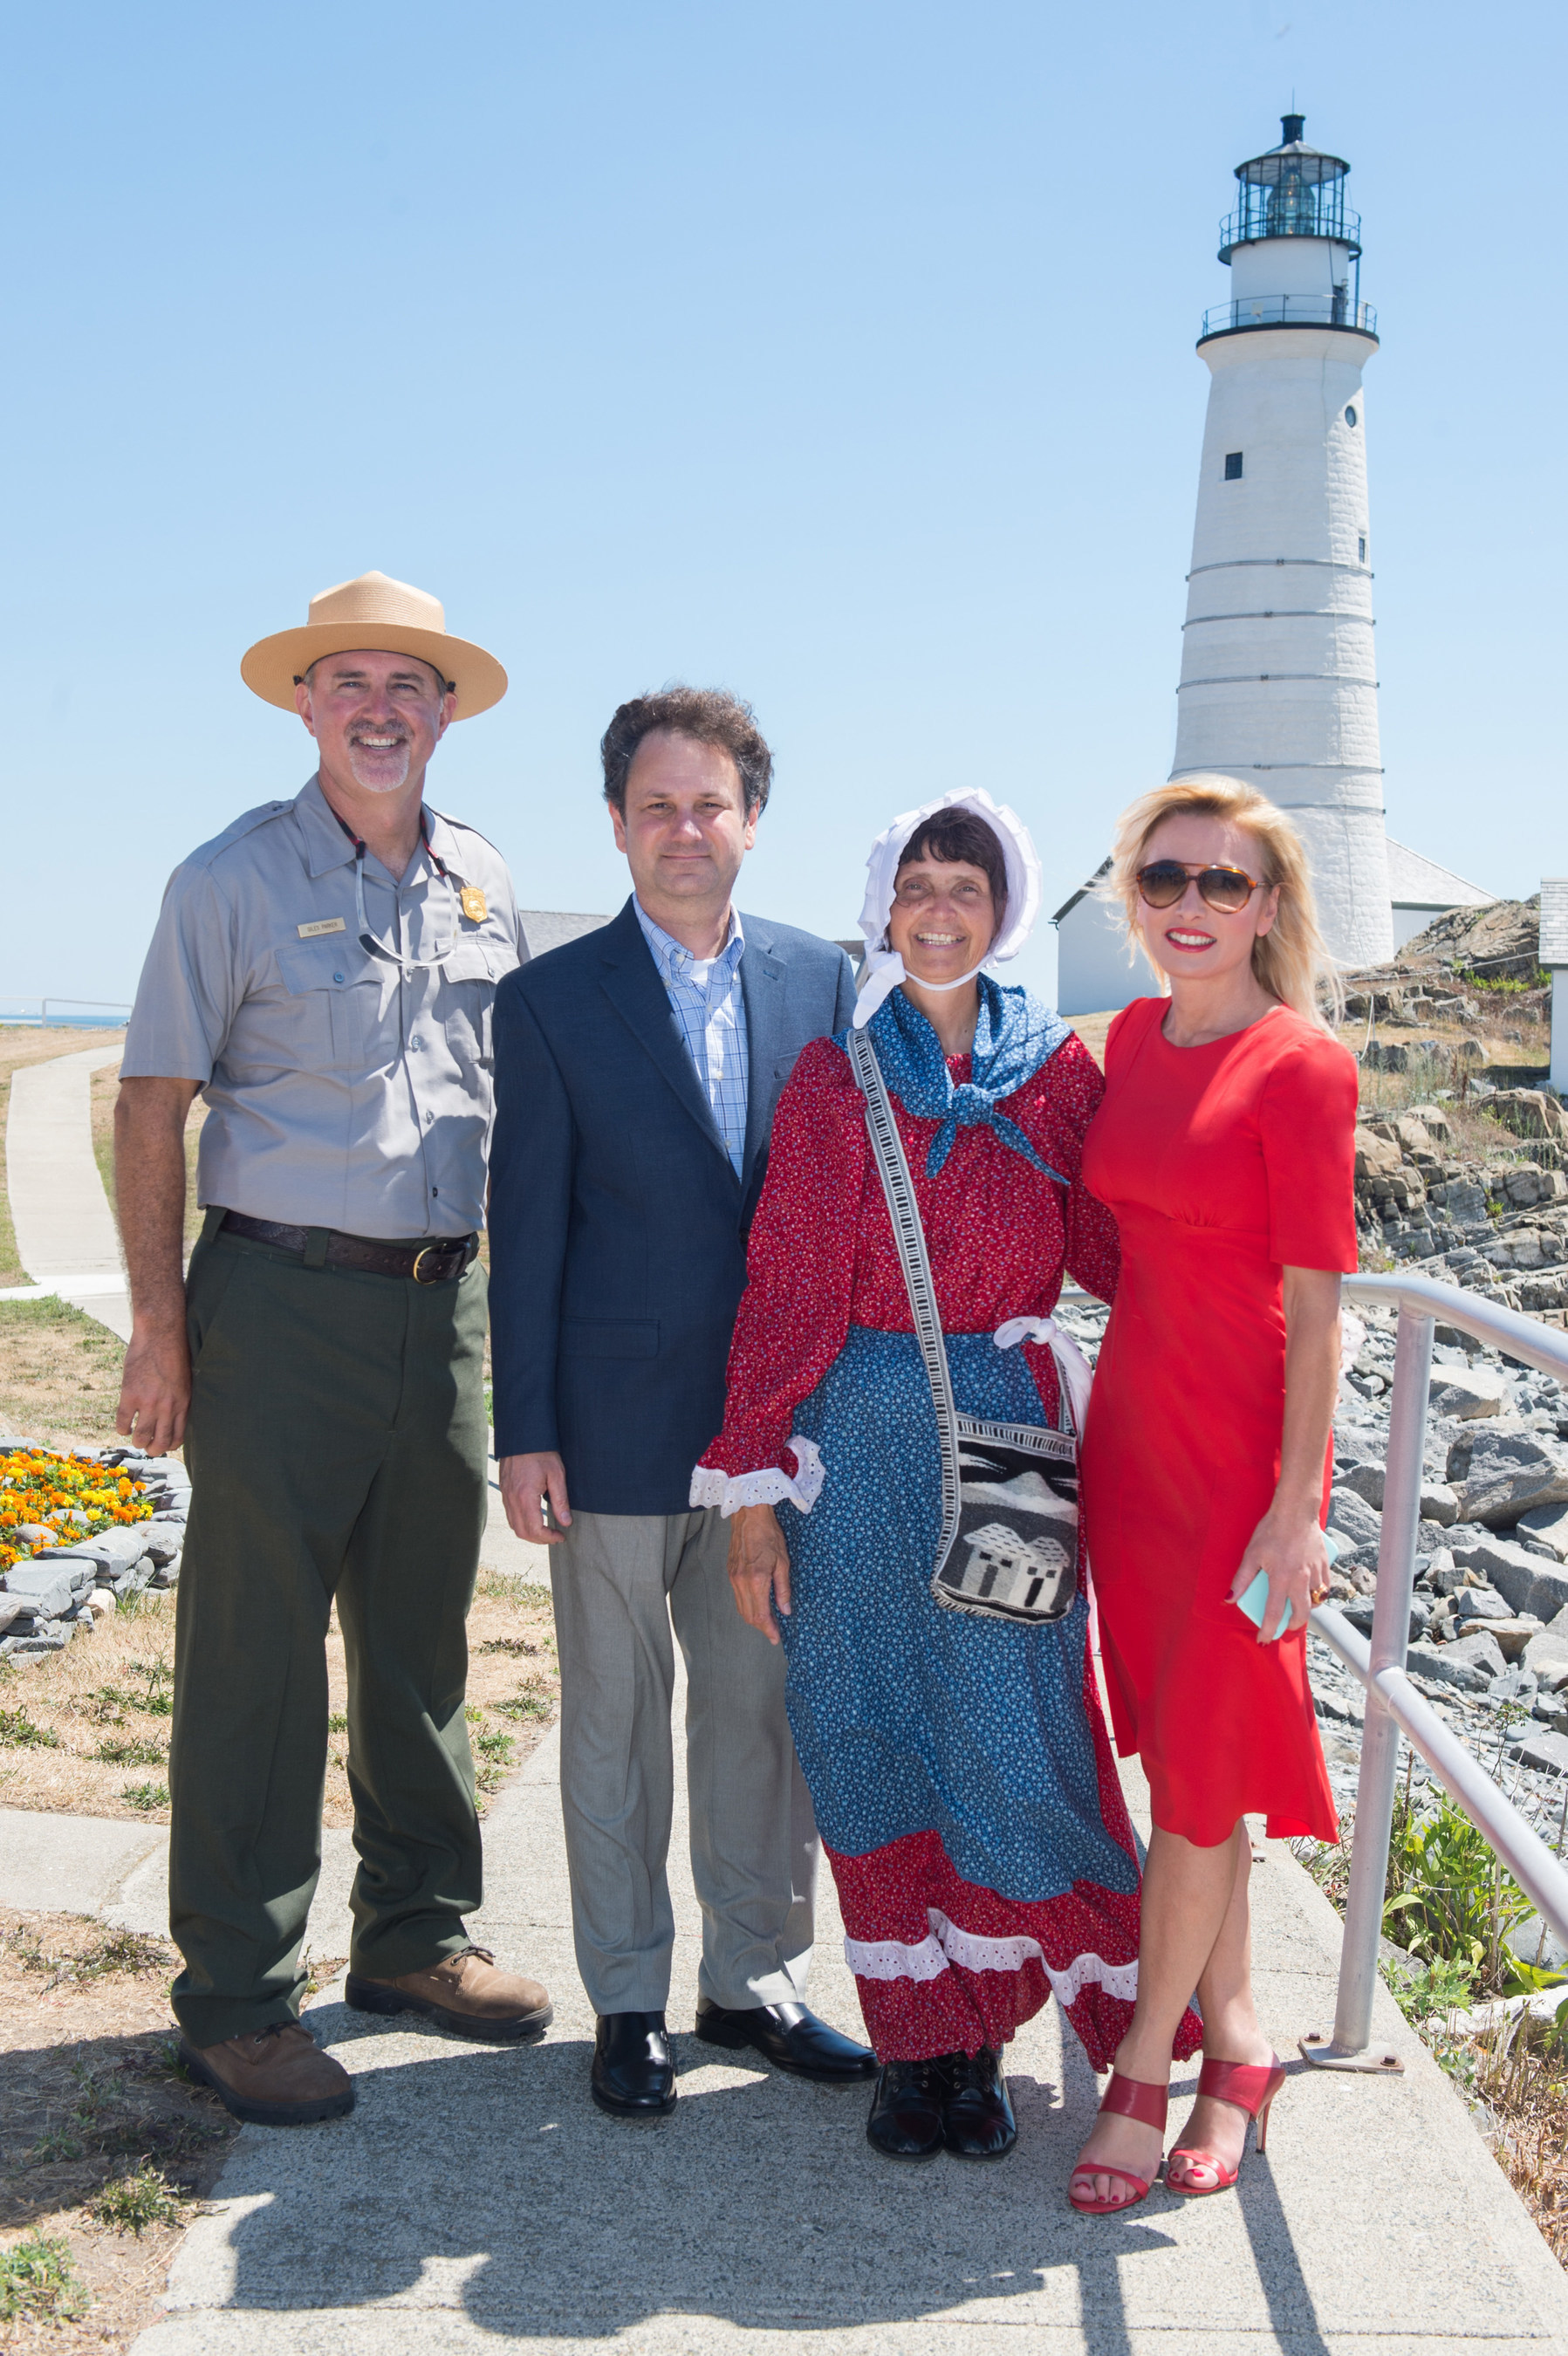 Yesterday Lands' End announced supportive funding administered by the U.S. Lighthouse Society, in partnership with nonprofit Boston Harbor Now, the National Park Service and the U.S. Coast Guard, to address the condition and needed repairs of the Boston Light Boathouse. Celebrating the 300th anniversary of Boston Light this year, the Boathouse will receive funding to repair the outdated foundation to allow for the building to be reopened as a visitor center for the public.